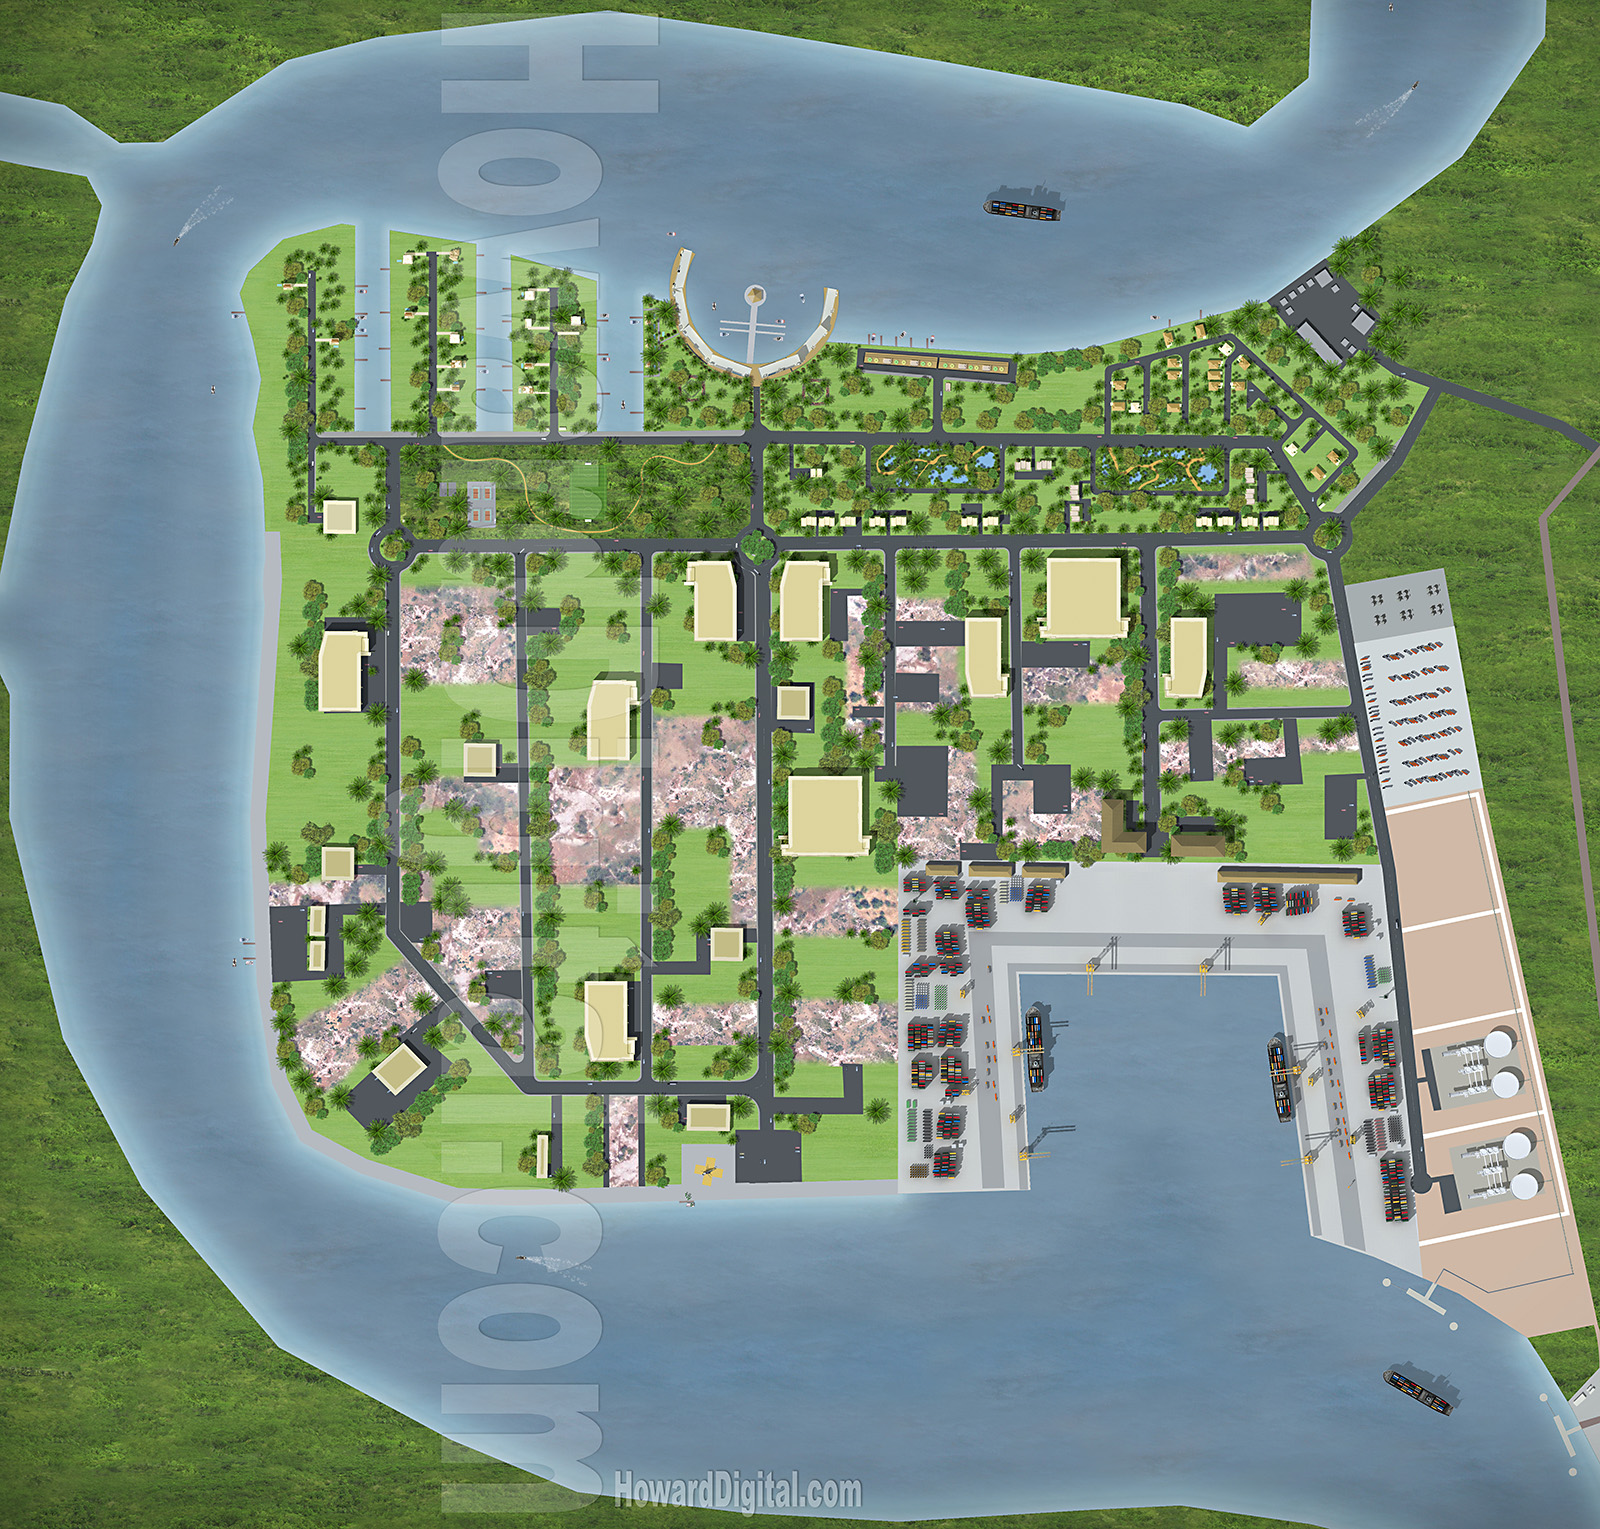 Picture Book Illustration Making An Architectural Model: Nigeria Energy City Renderings